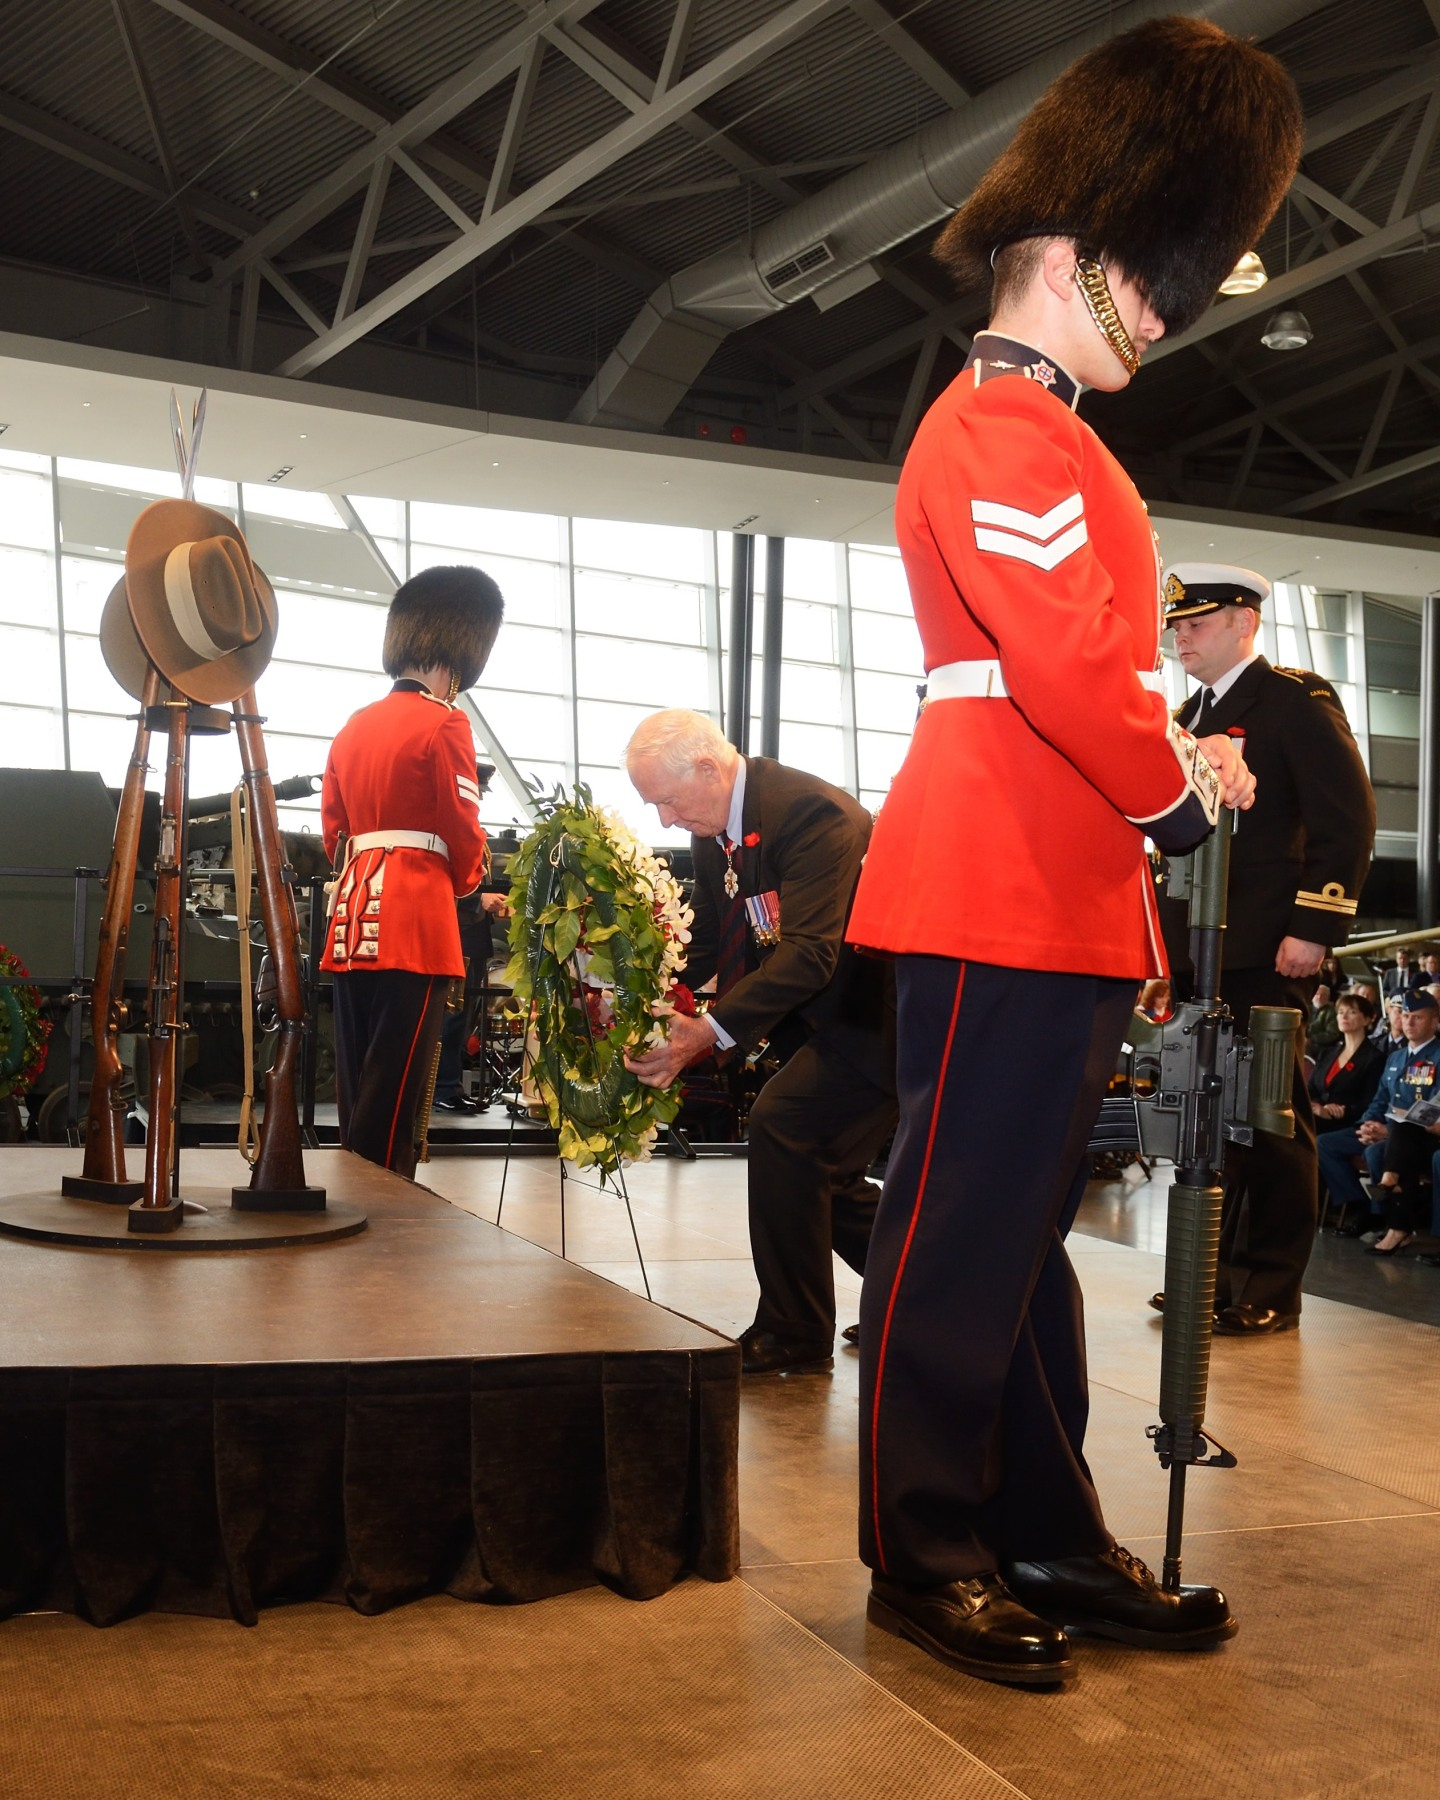 The Governor General laid a wreath to pay tribute to the 8 709 Australian and 2 779 New Zealand soldiers who were killed during the Gallipoli Campaign that began on April 25, 1915. Some Canadian soldiers, who had signed up for service with the United Kingdom, were among the British forces at Gallipoli. In addition, several Canadian military field hospitals supported the campaign.